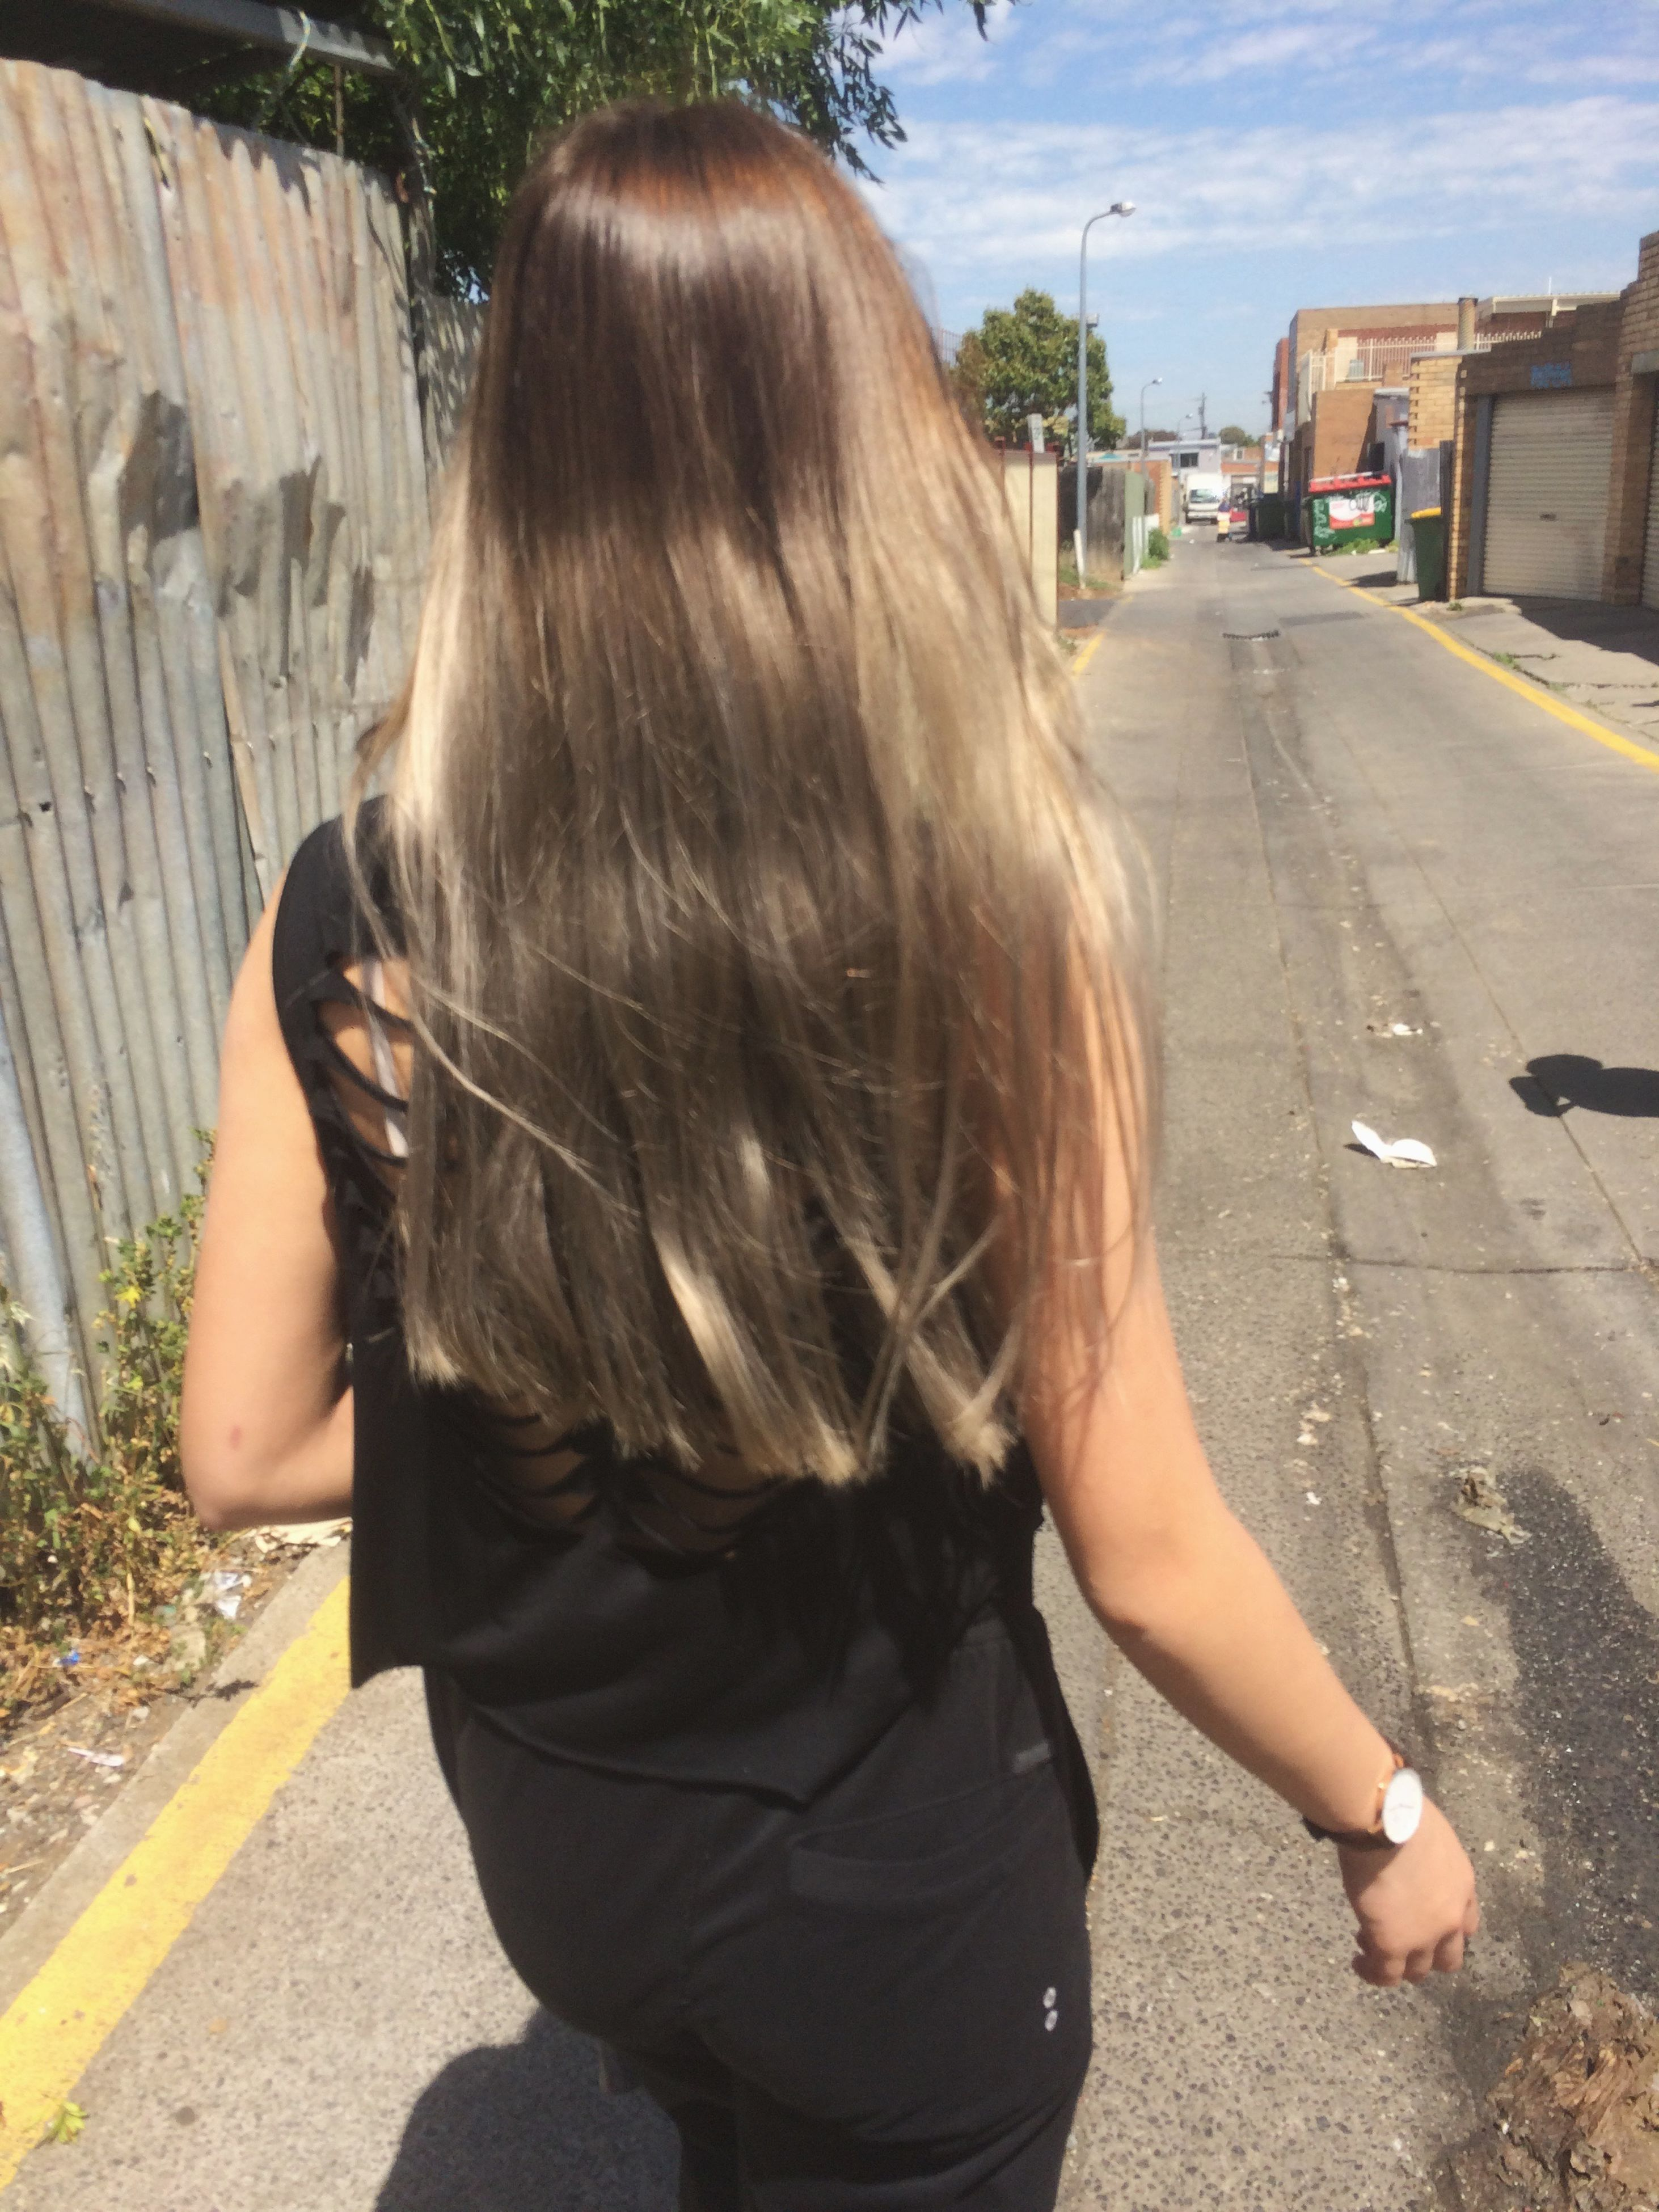 lifestyles, rear view, street, road, long hair, casual clothing, leisure activity, day, sunlight, blond hair, standing, brown hair, outdoors, building exterior, looking away, waist up, transportation, side view